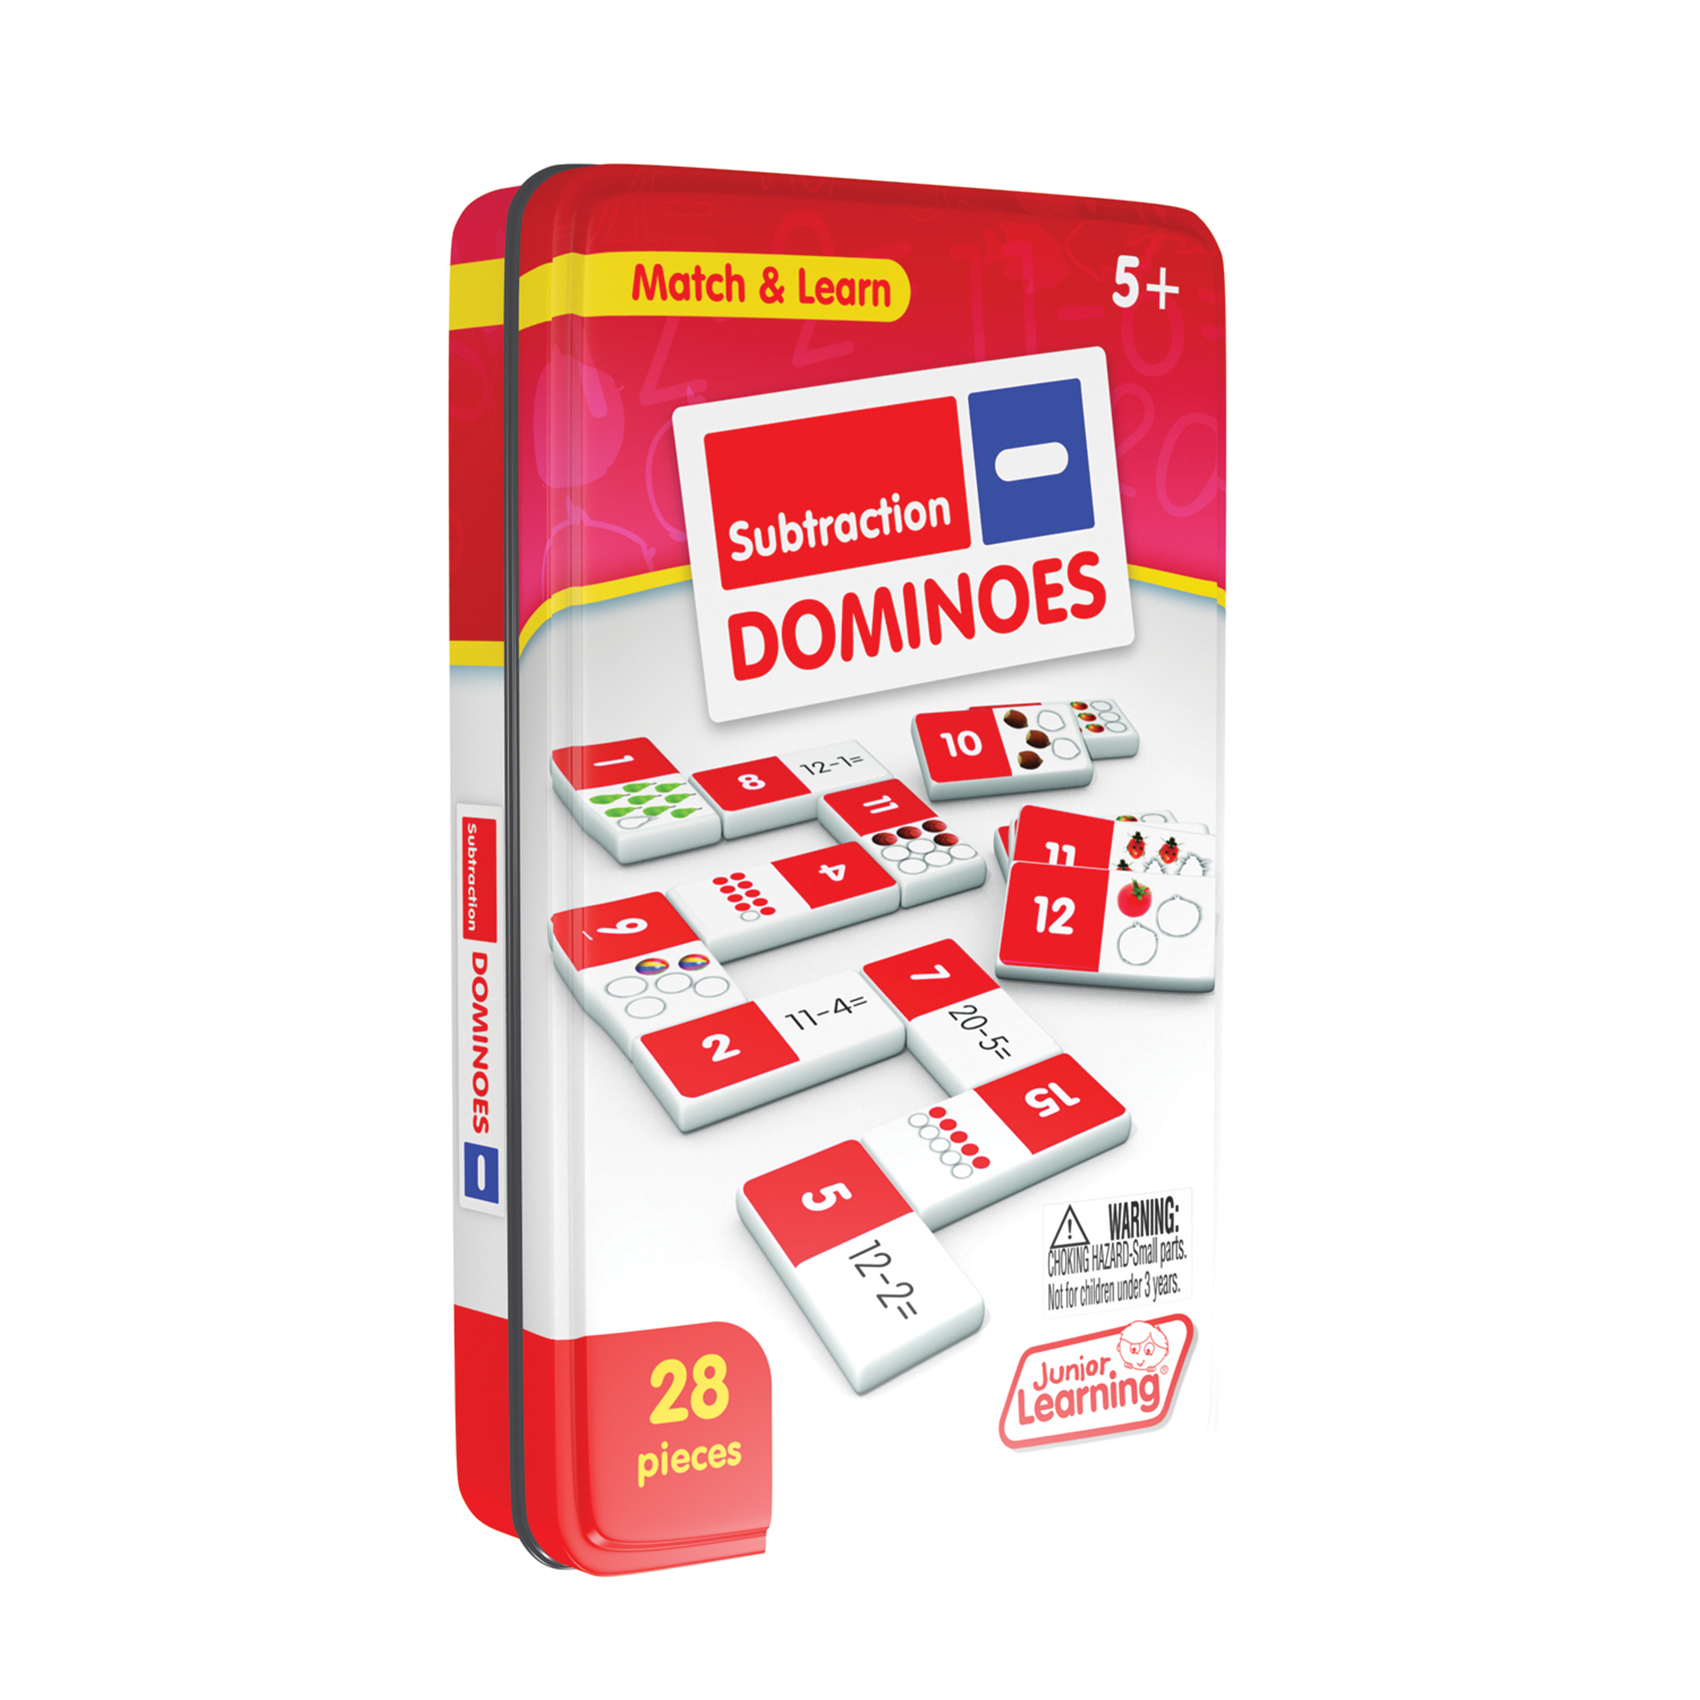 Junior Learning - Subtraction Dominoes Match & Learn Educational Learning Game